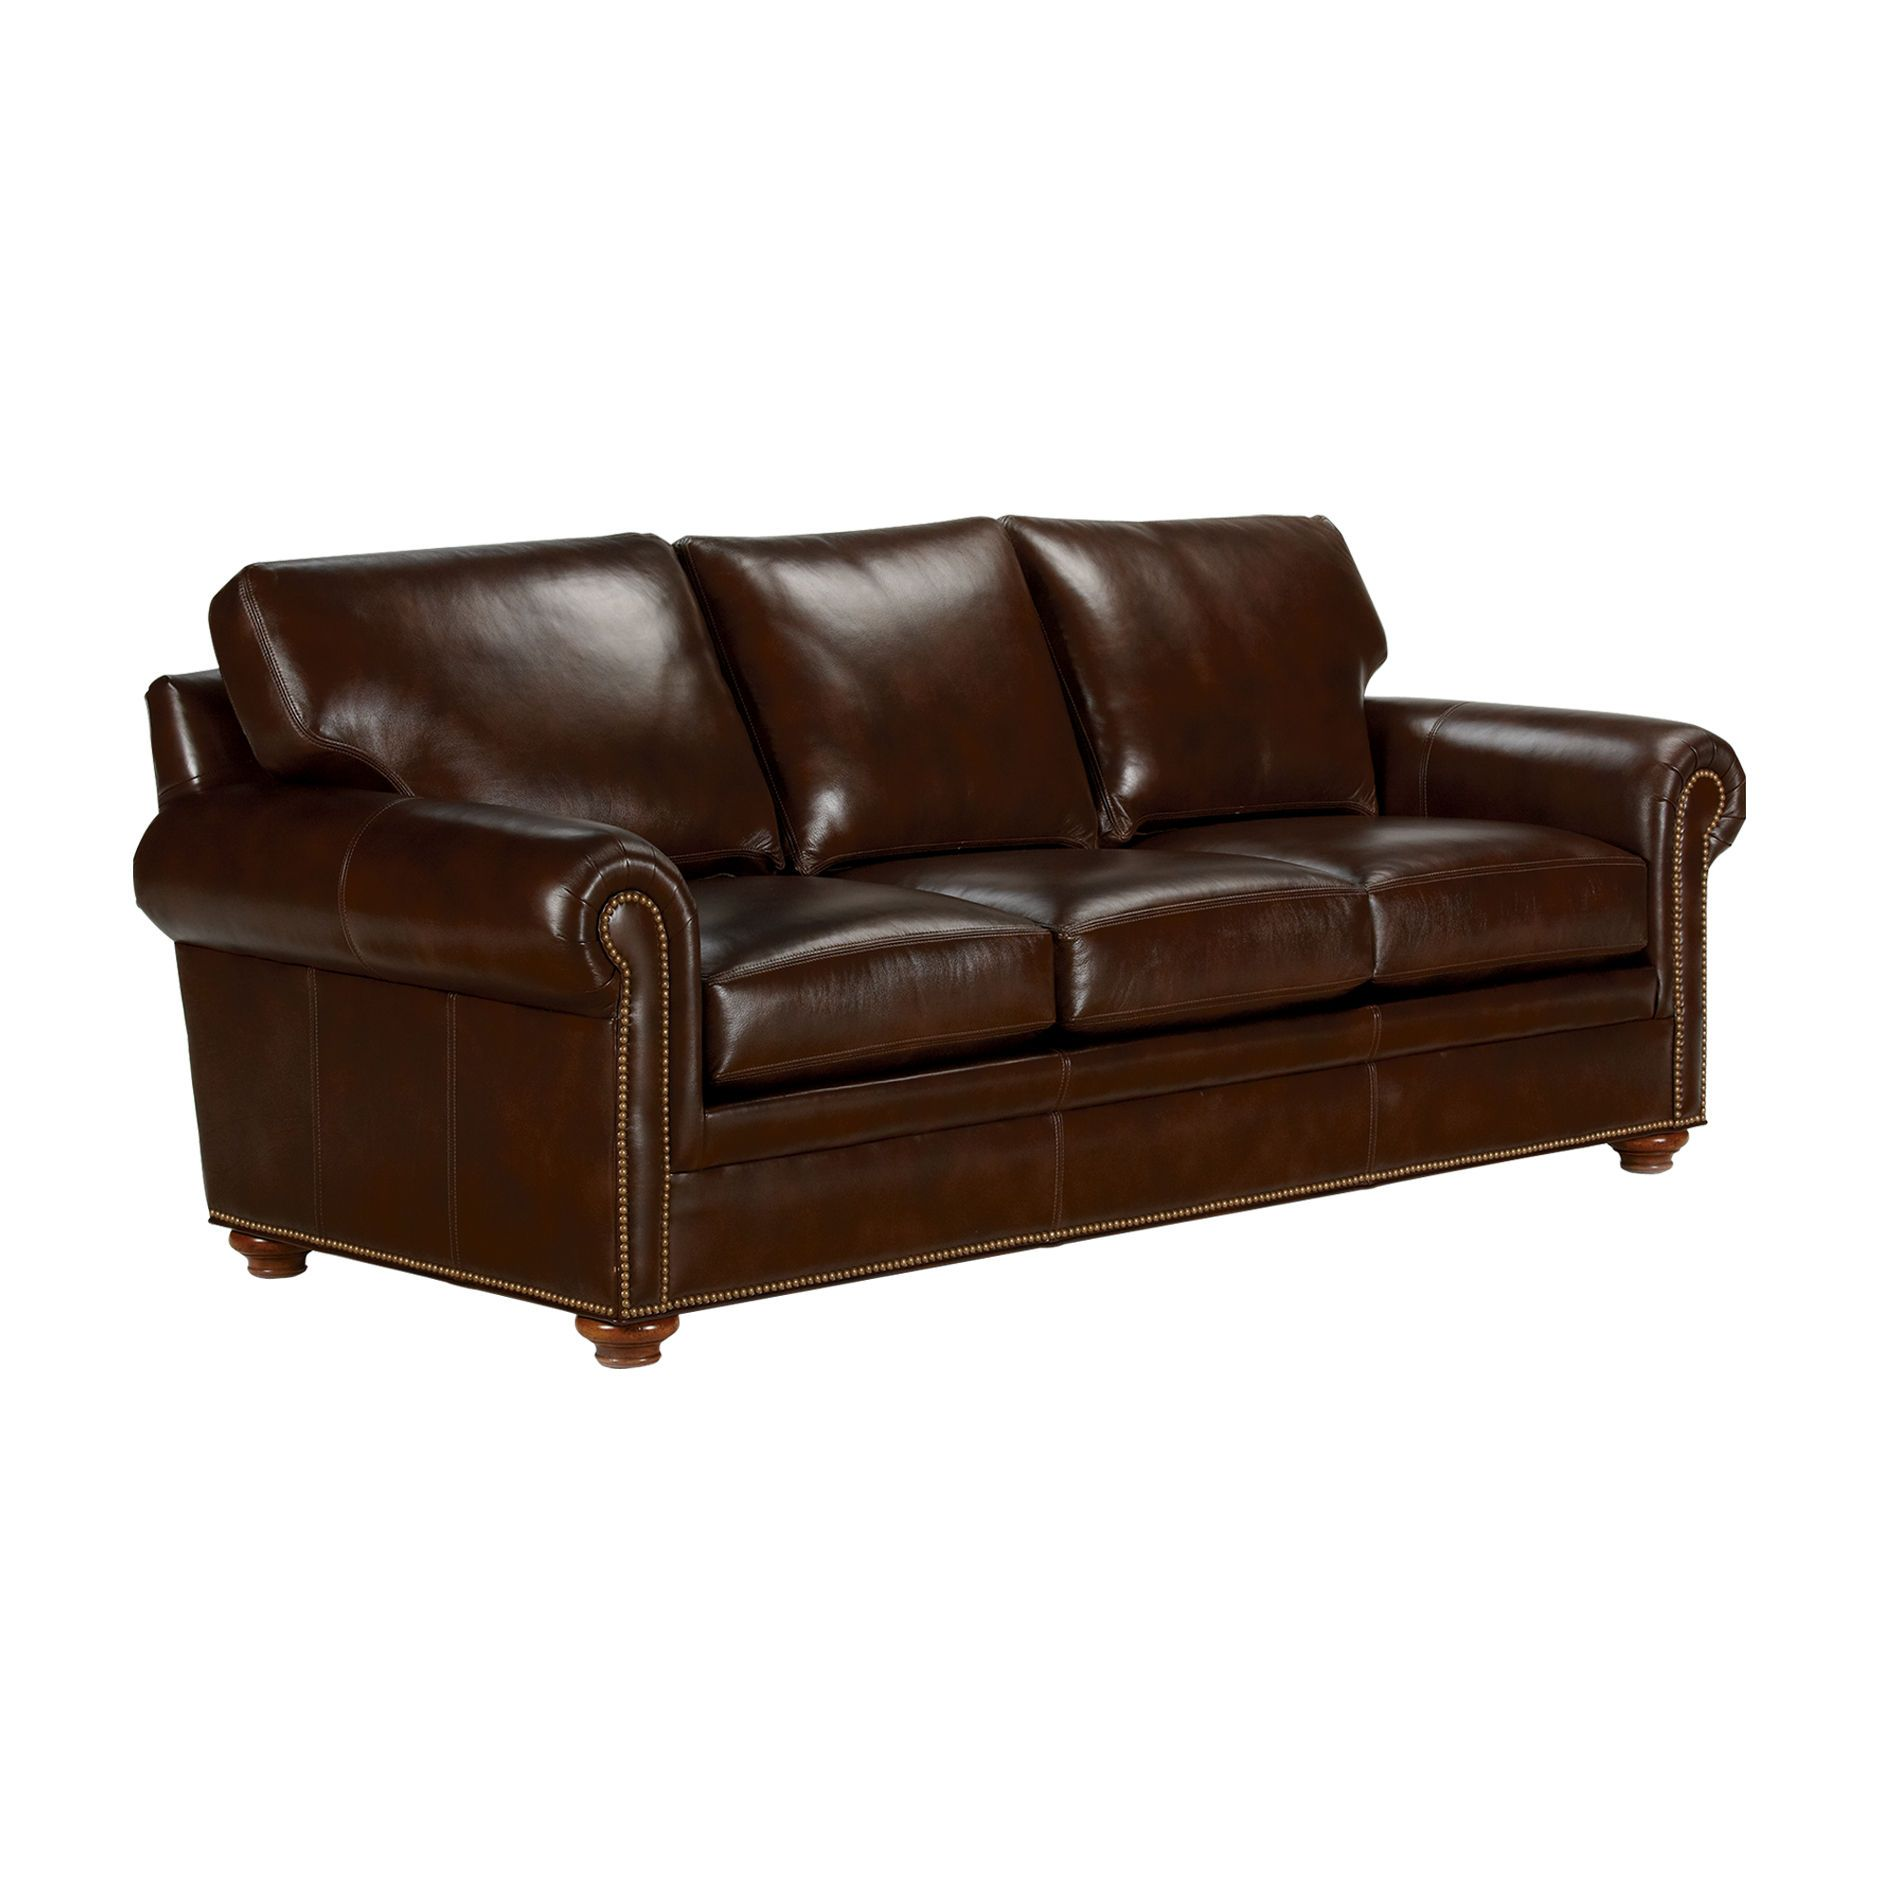 conor express leather sofa